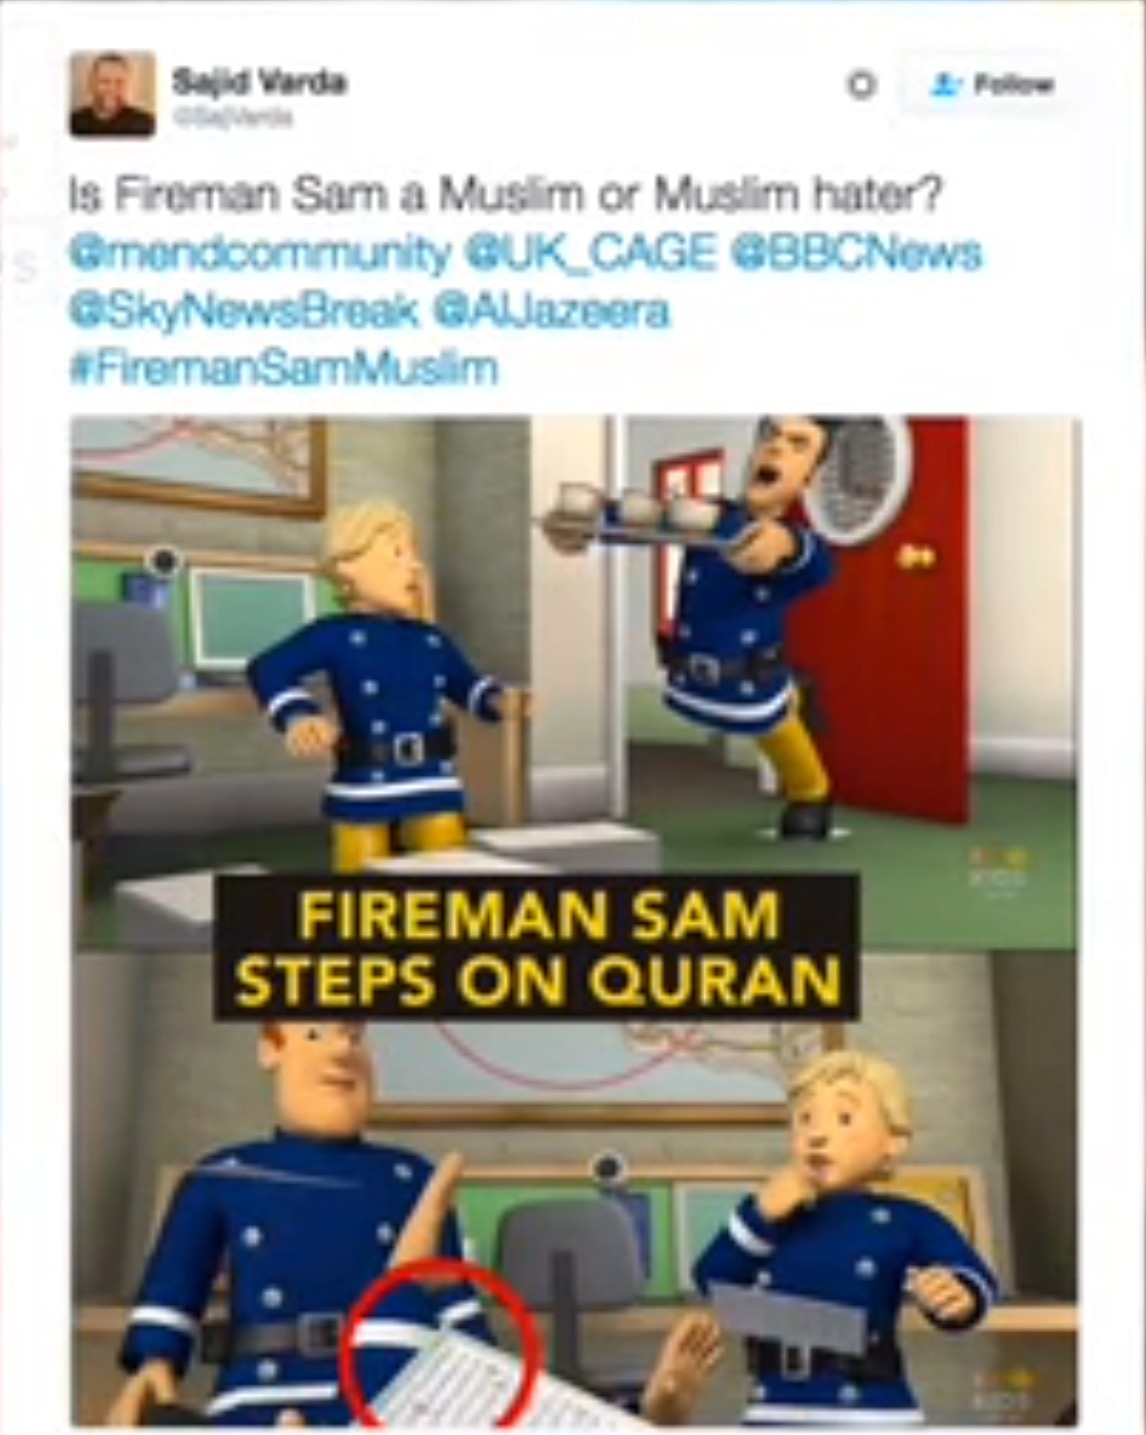 Fireman Sam - Troubled Waters(Rumoured Arabian,Edited Episode;Existence Unconfirmed)